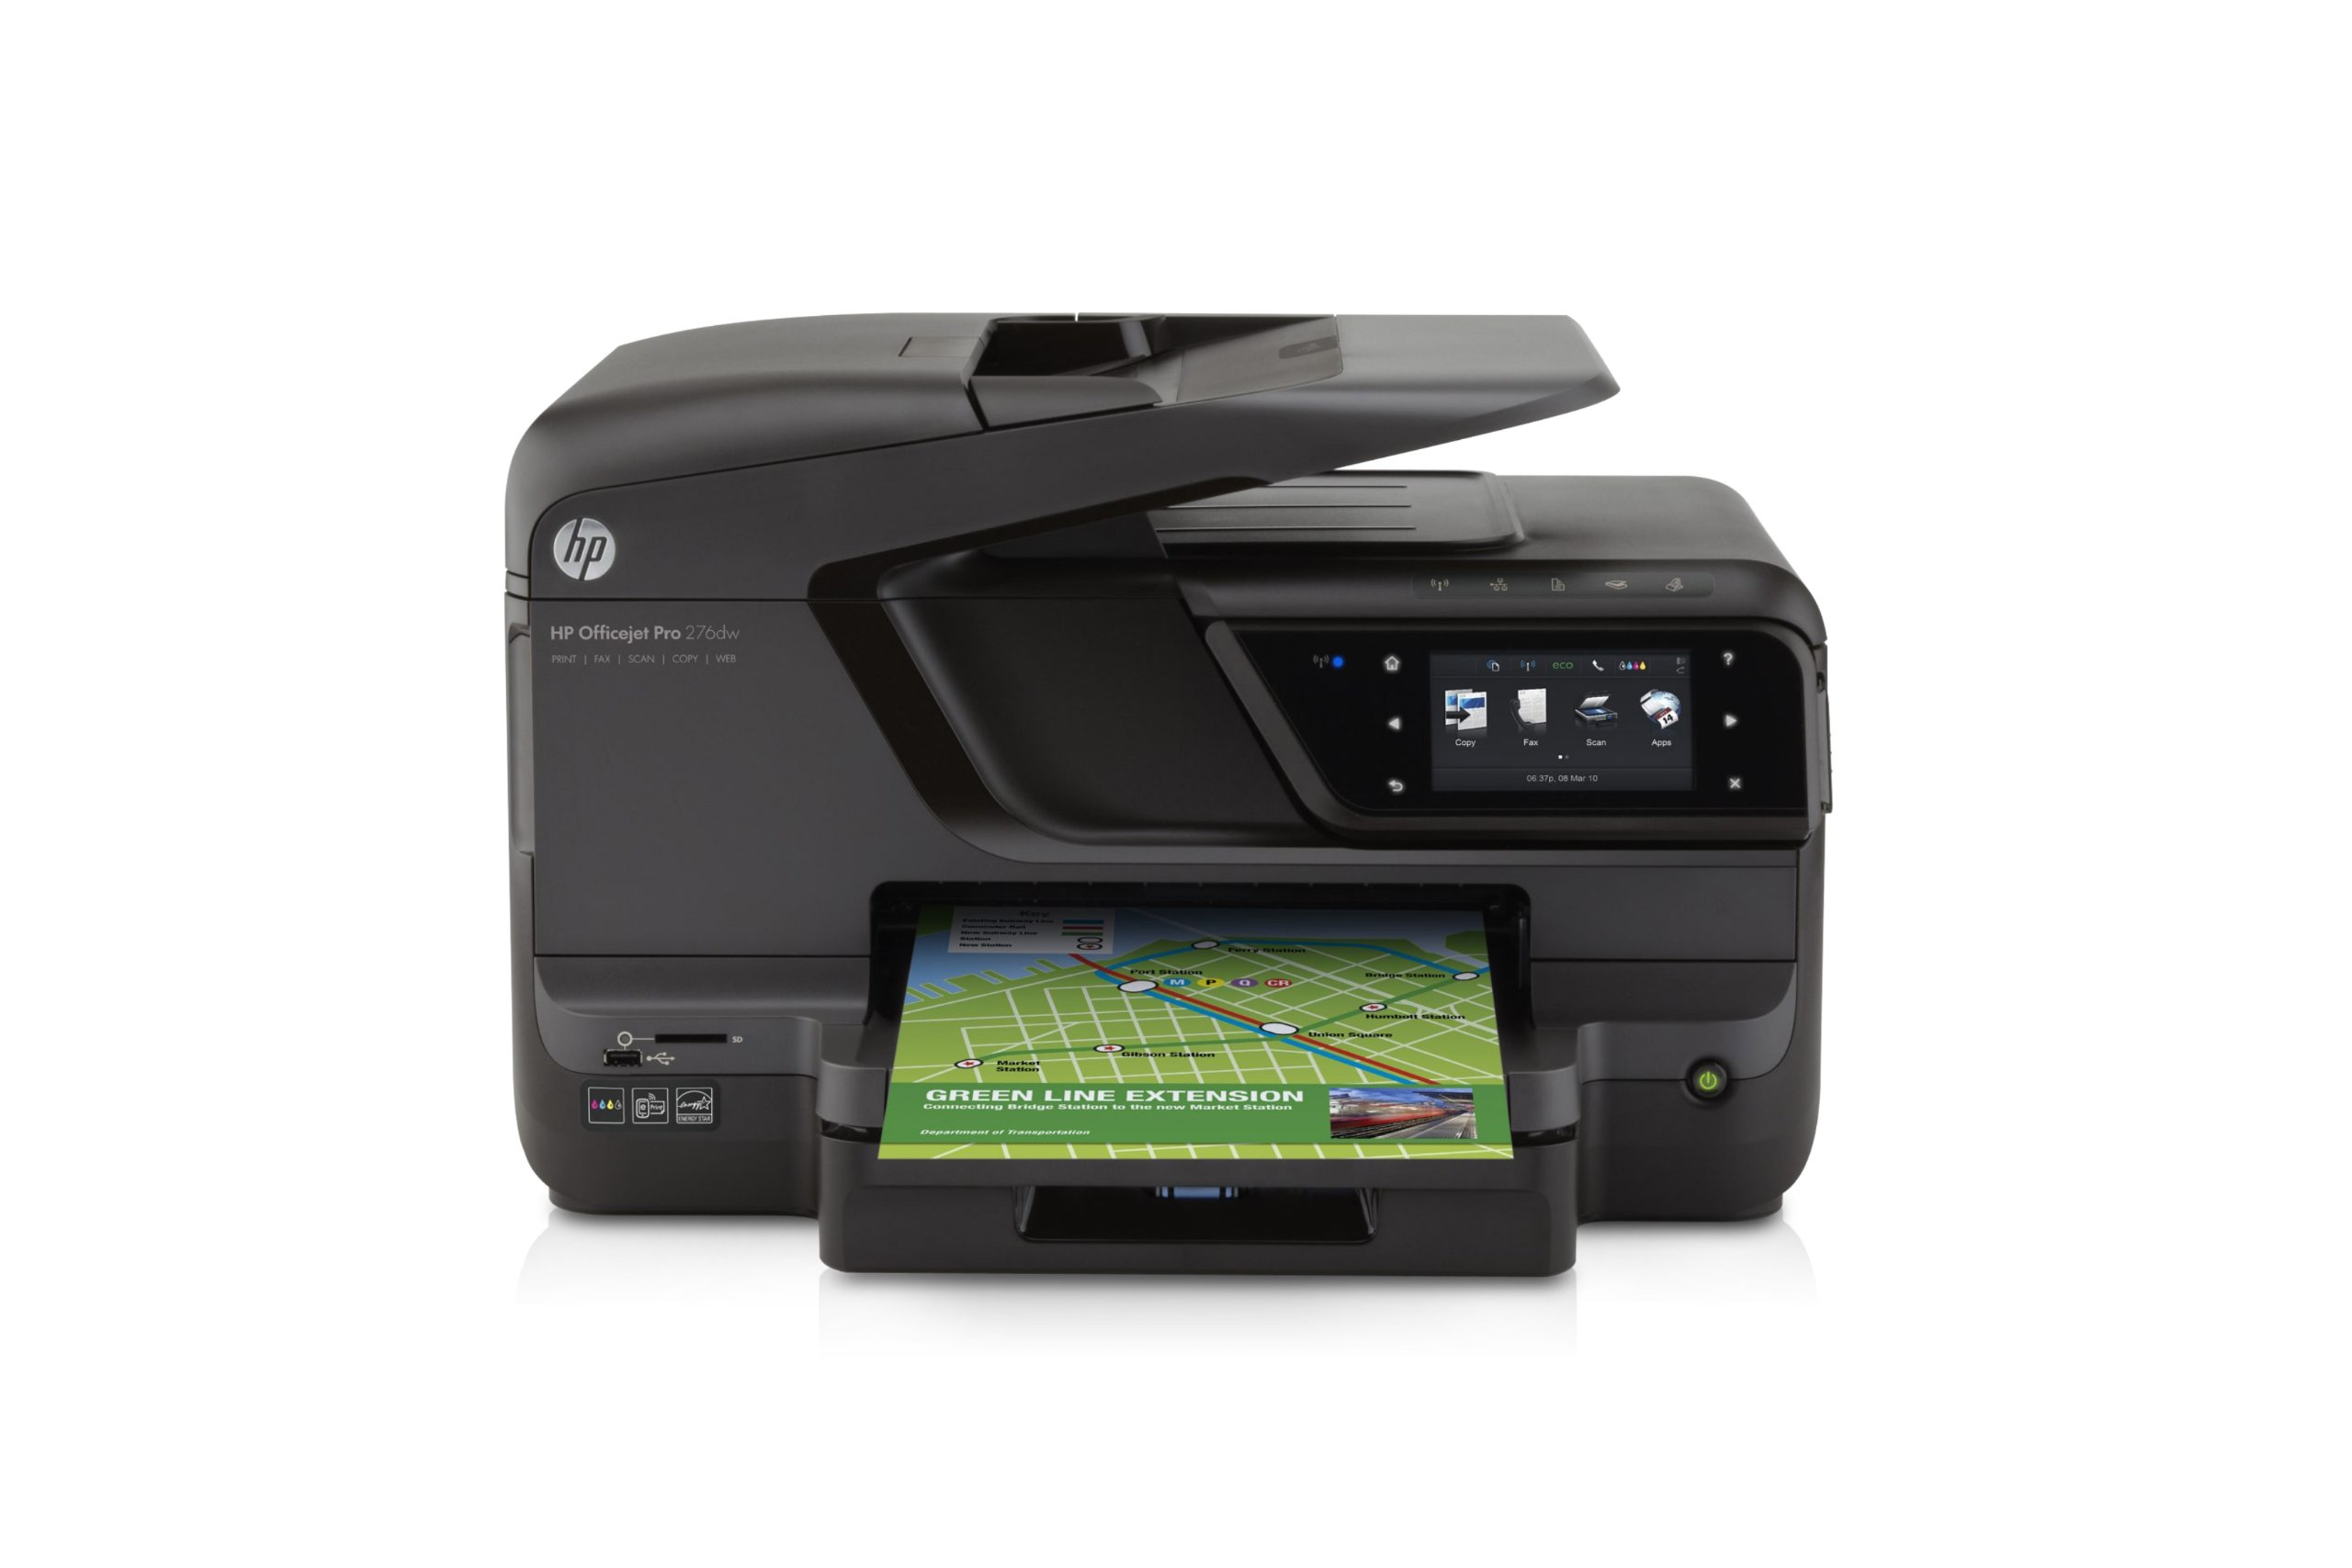 HP OfficeJet Pro 276dw Wireless All-in-One Photo Printer with Mobile Printing (CR770A) by HP